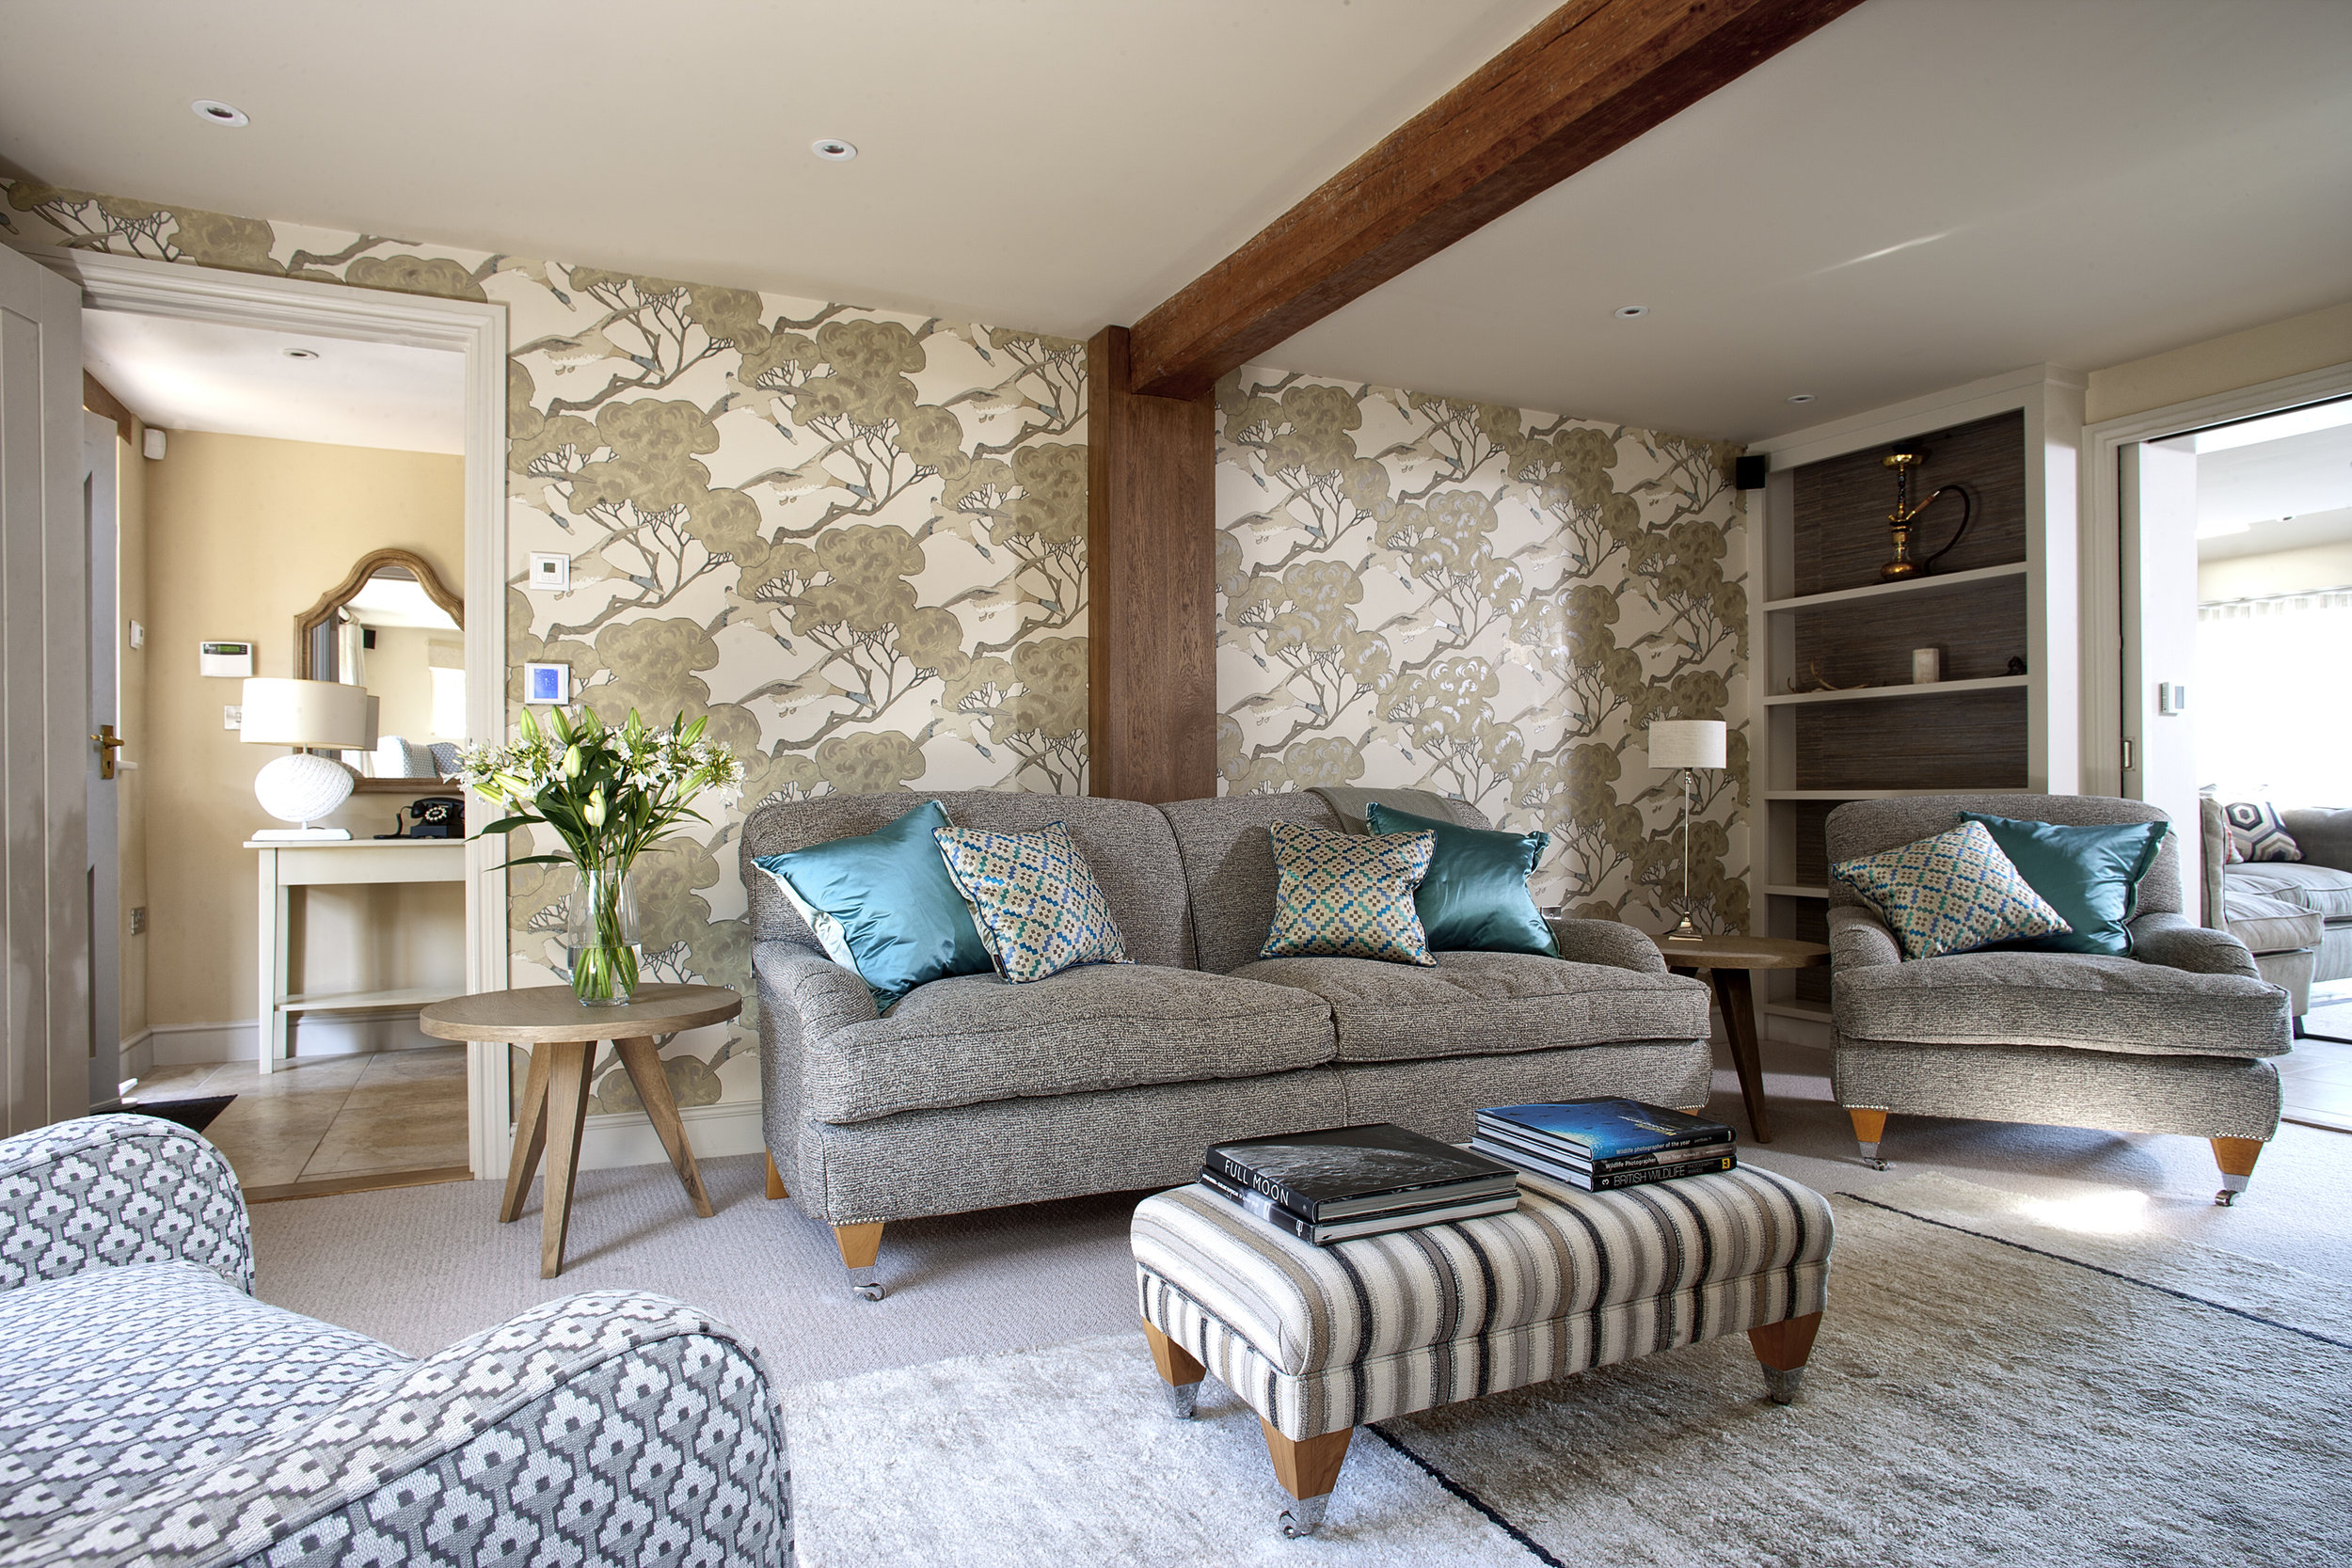 Cotton_Tree_Interiors_Sitting_Room.jpg